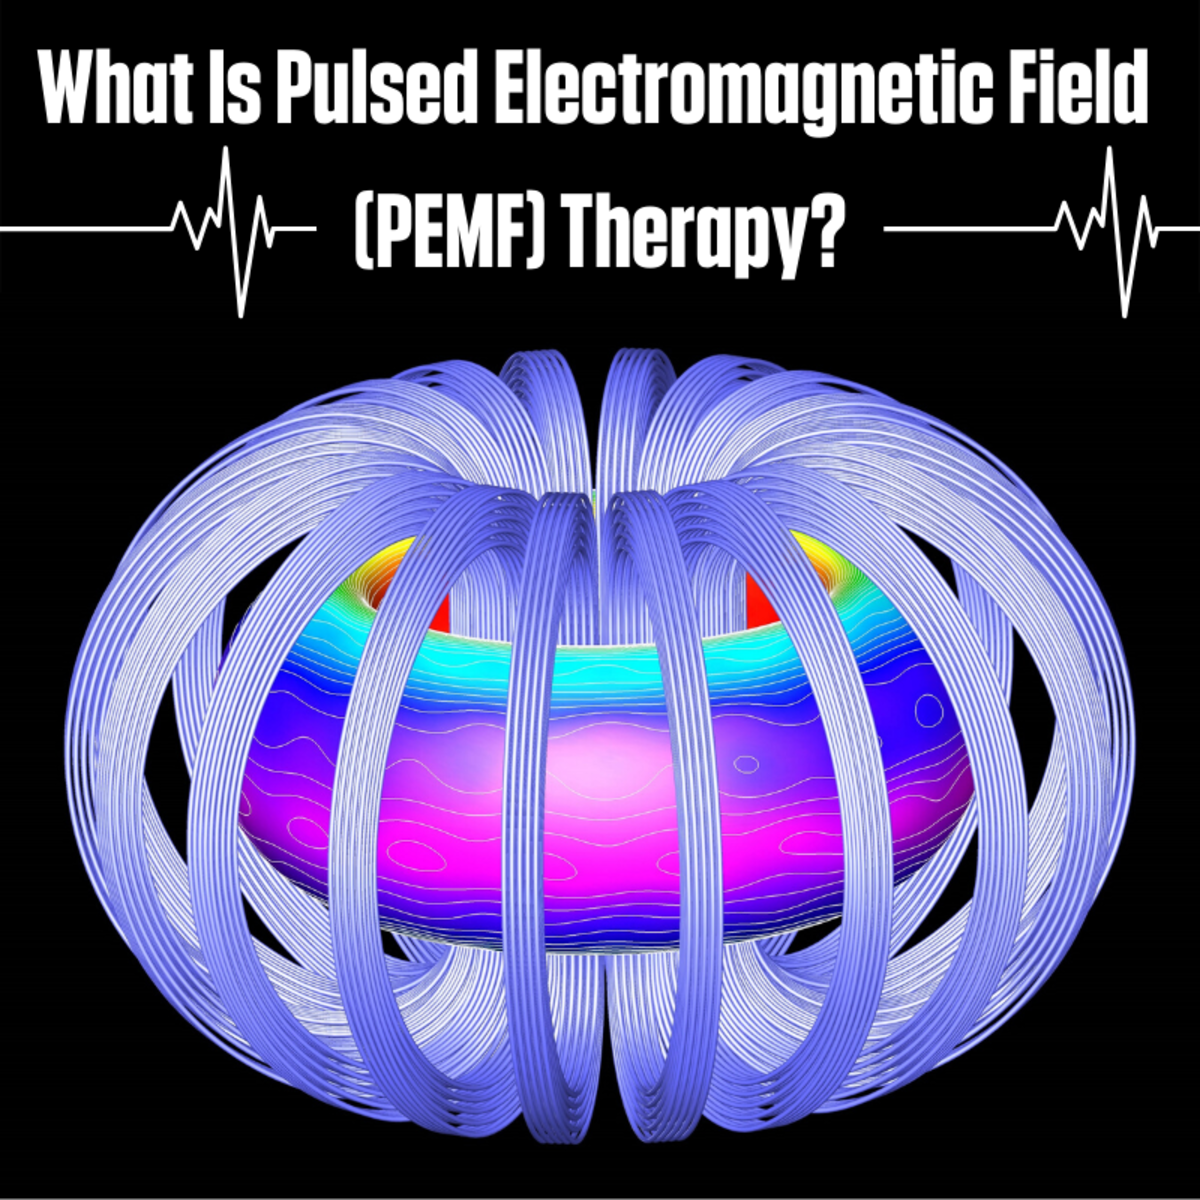 What Is Pulsed Electromagnetic Field (PEMF) Therapy?